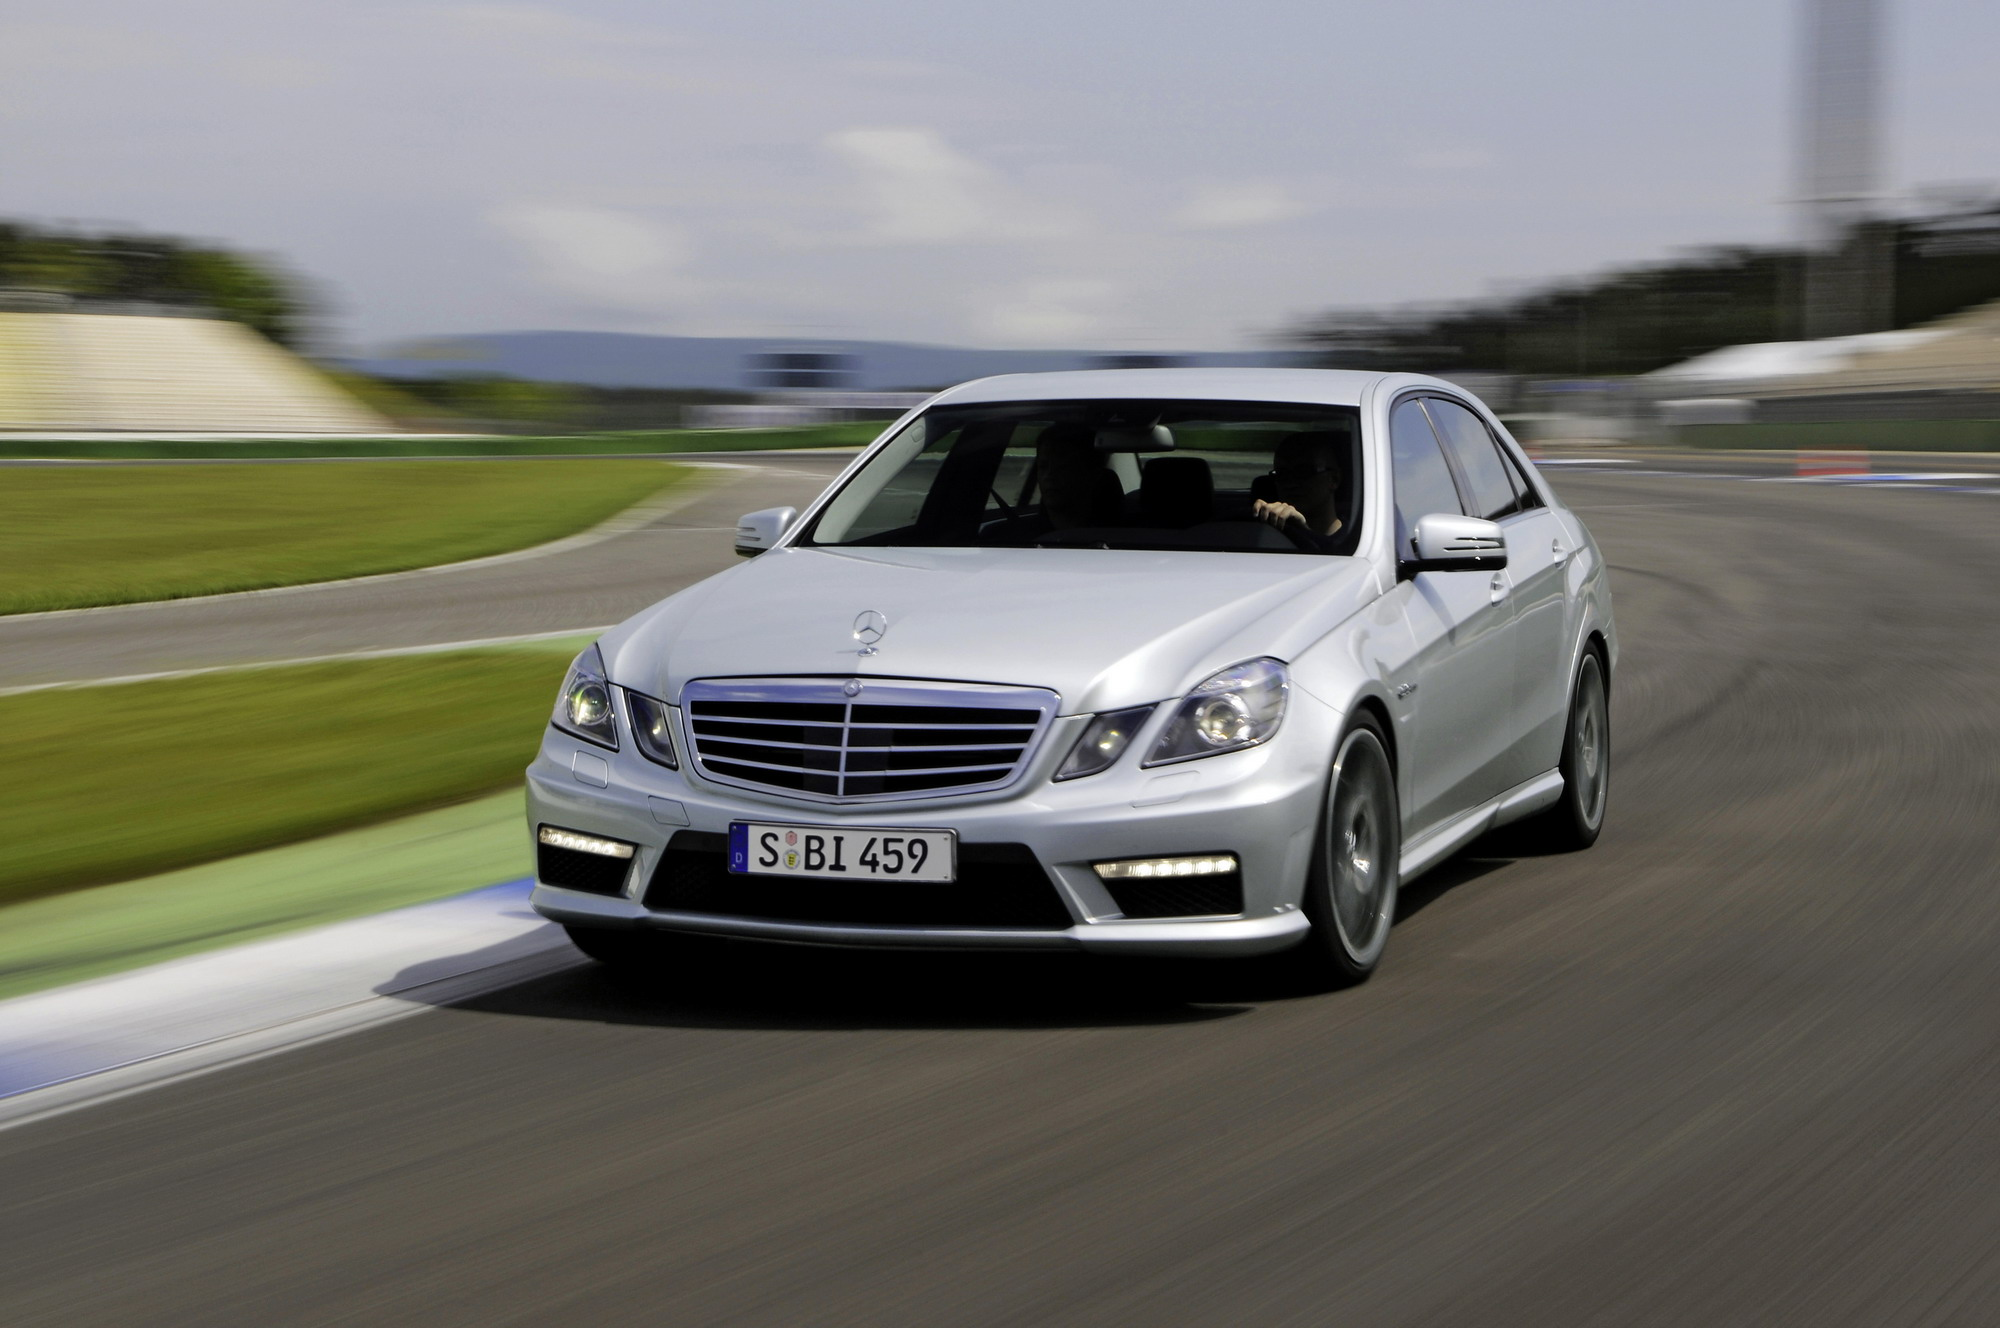 2011 mercedes e63 amg review gallery top speed. Black Bedroom Furniture Sets. Home Design Ideas